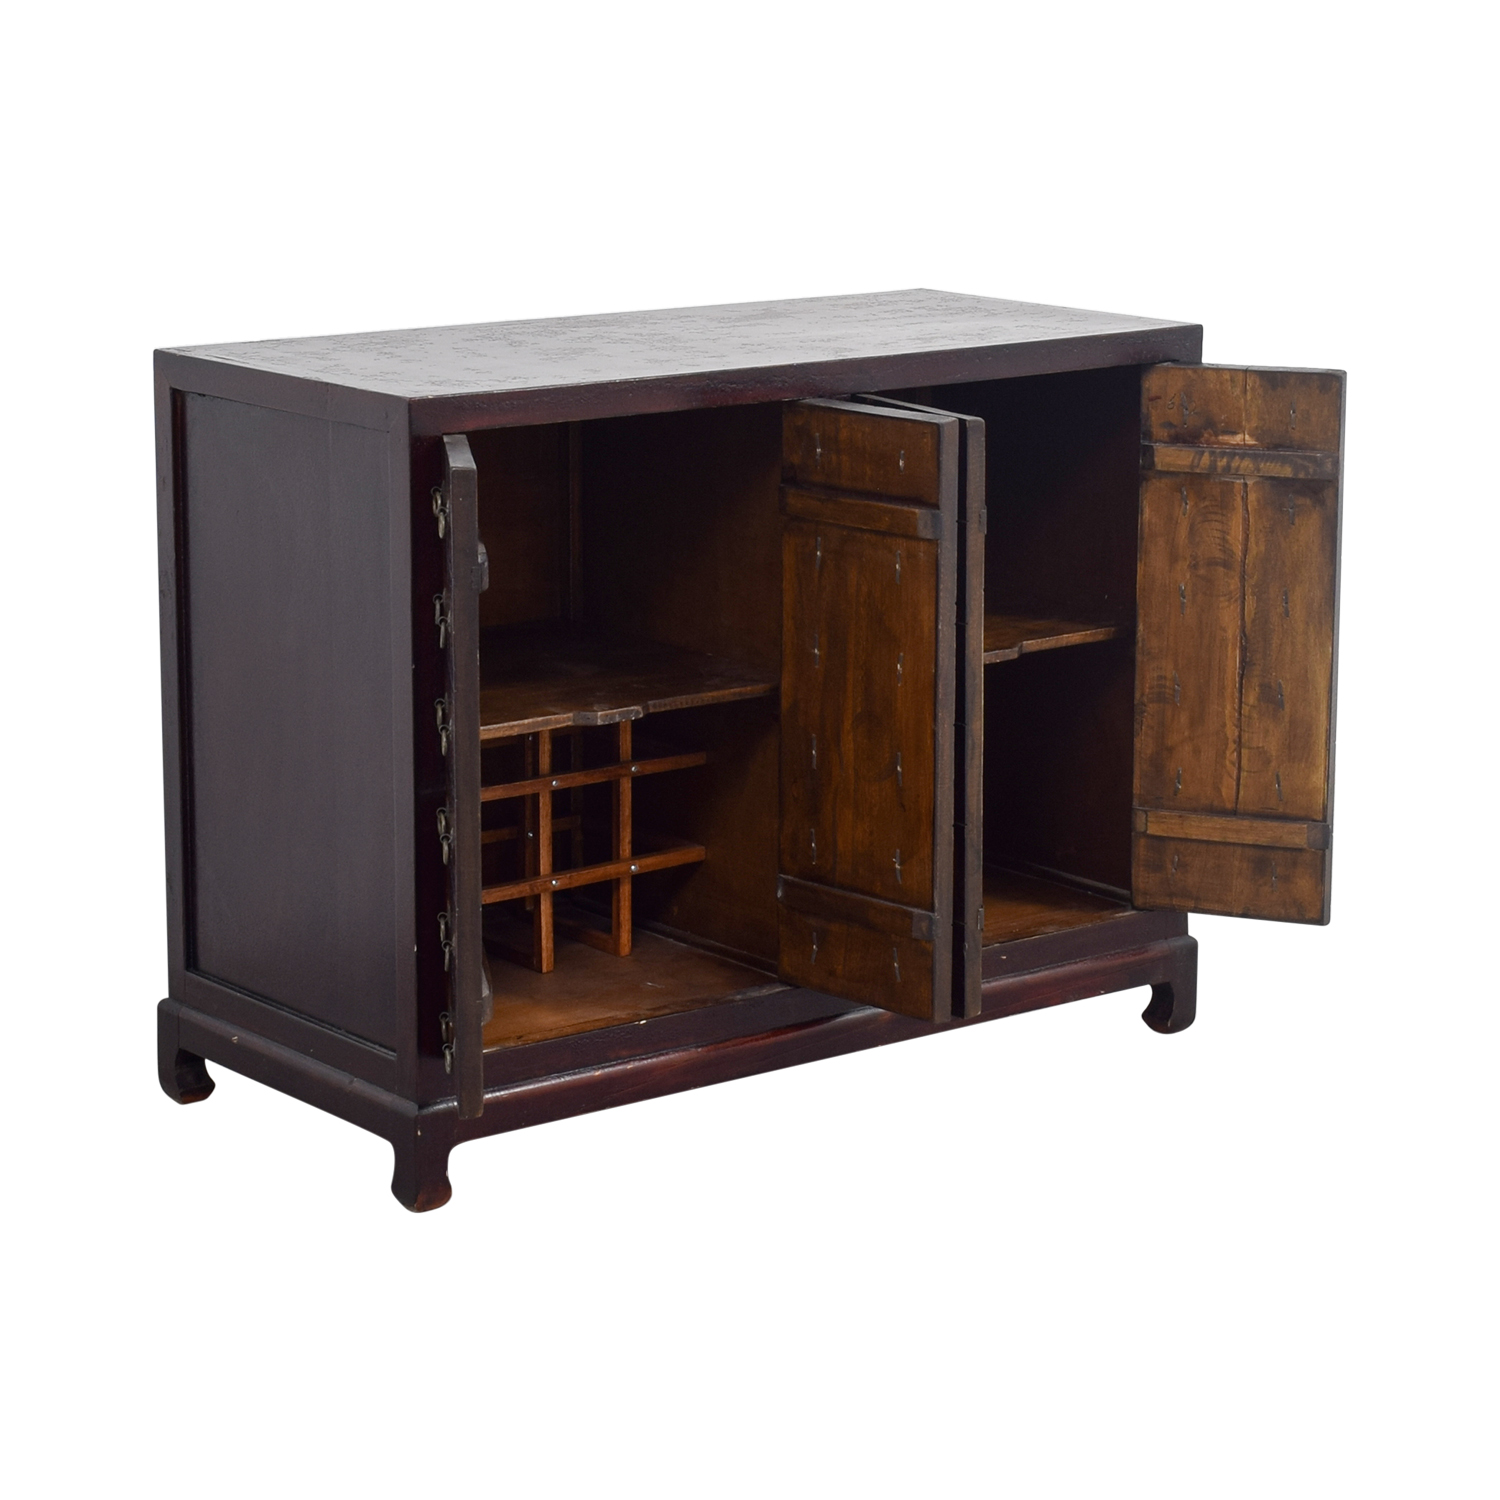 ... Asian Barn Antique Chinese Cabinet sale ... - 79% OFF - Asian Barn Asian Barn Antique Chinese Cabinet / Storage